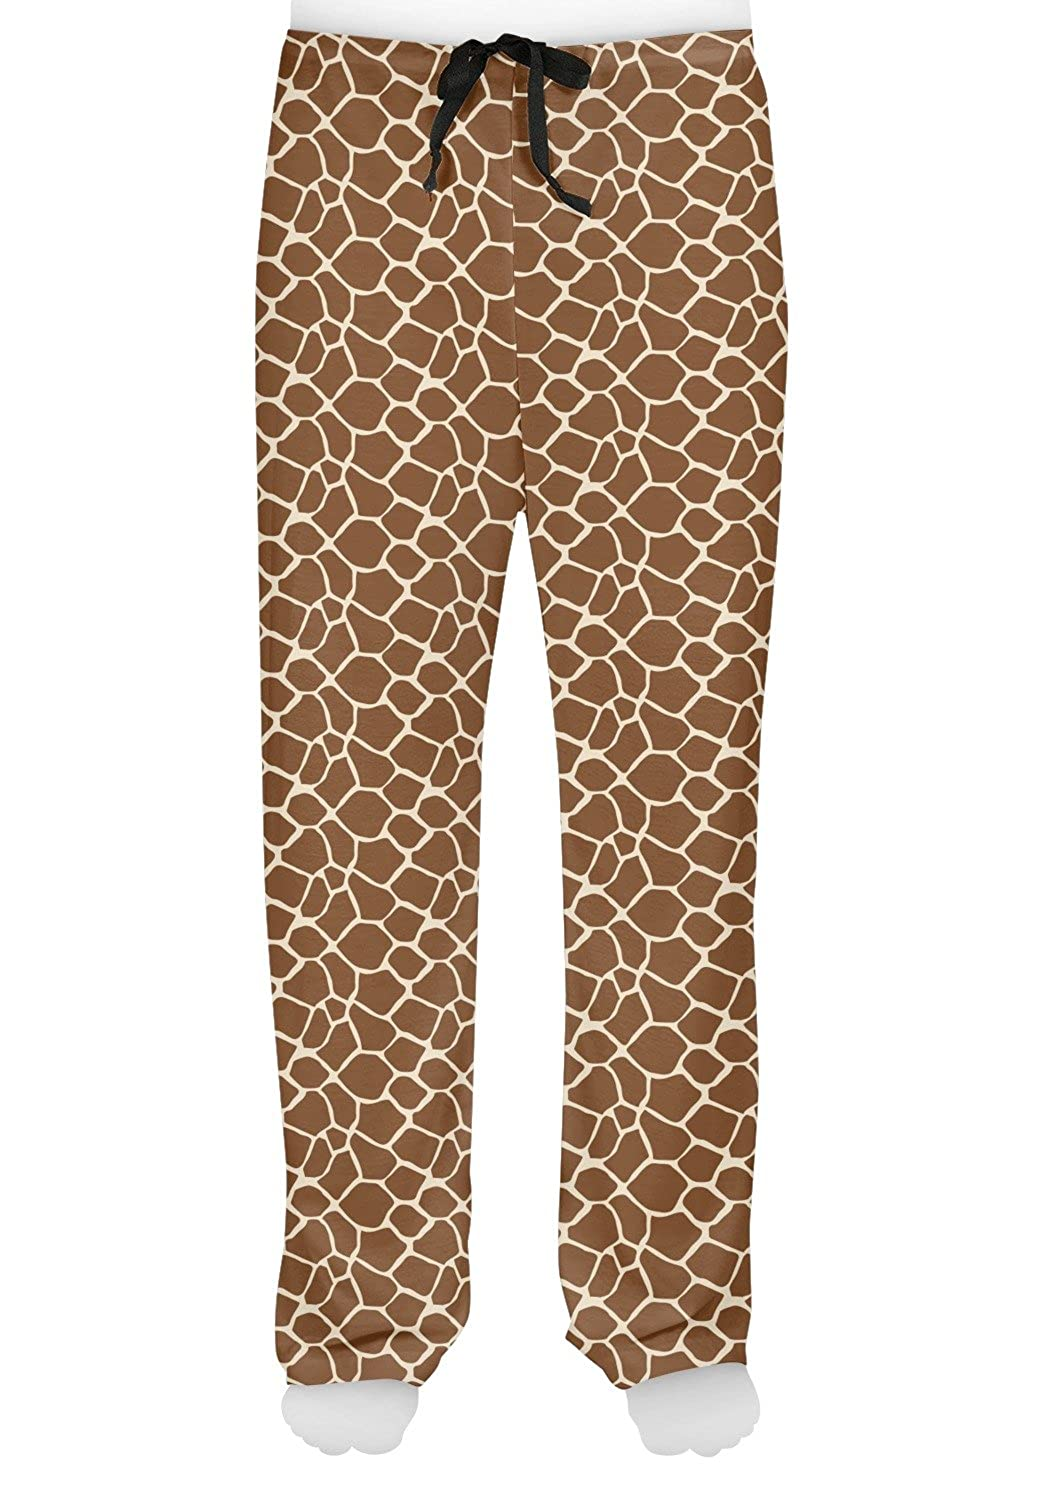 RNK Shops Giraffe Print Mens Pajama Pants Personalized